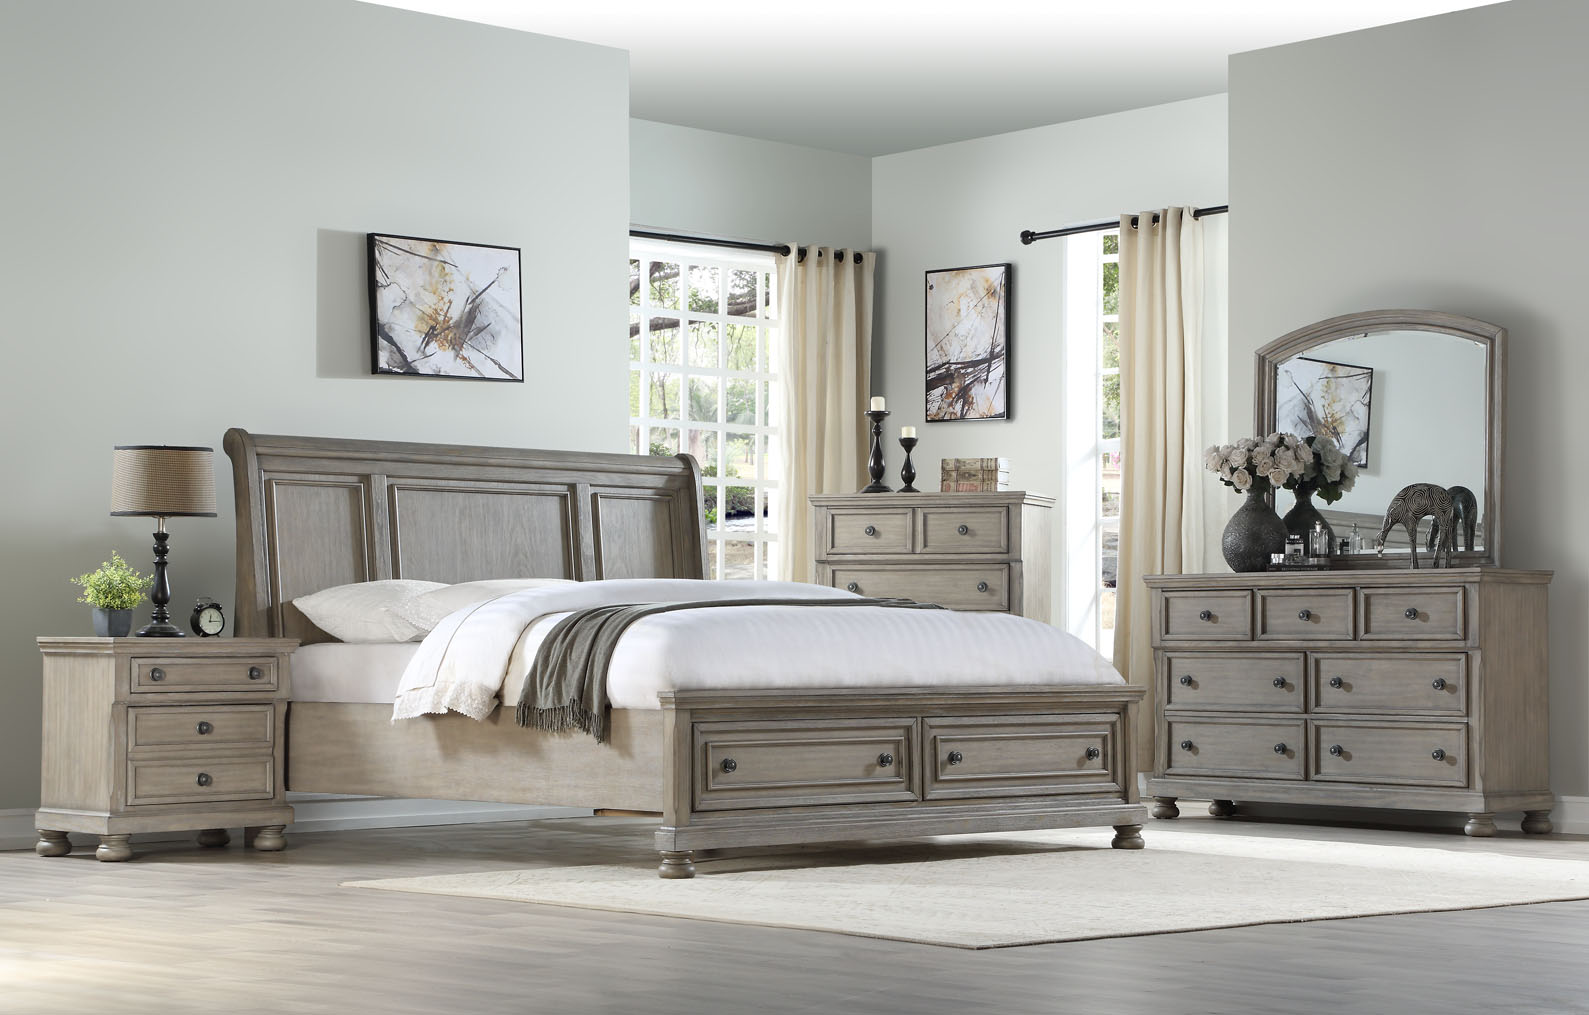 1070 Queen 5 Piece Bedroom Set - Prescott Grey Bedroom $1559